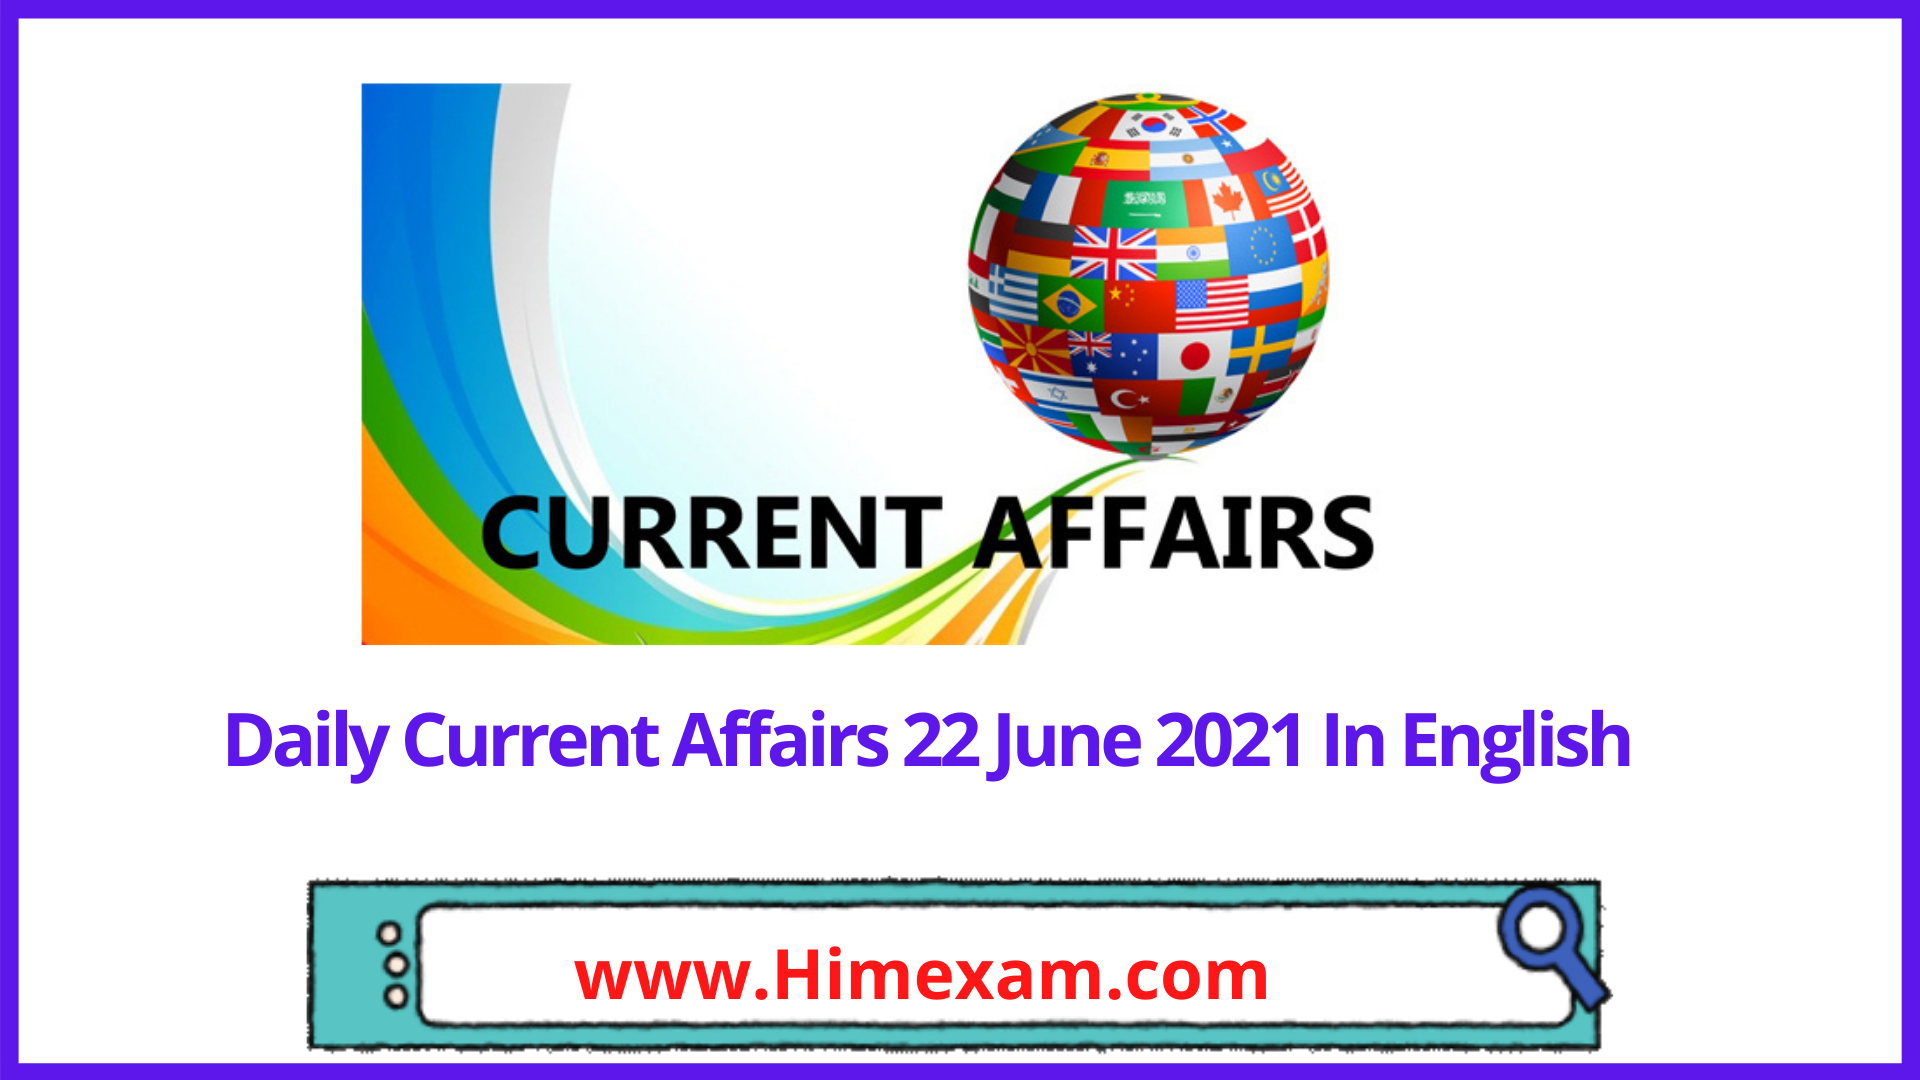 Daily Current Affairs 22 June 2021 In English